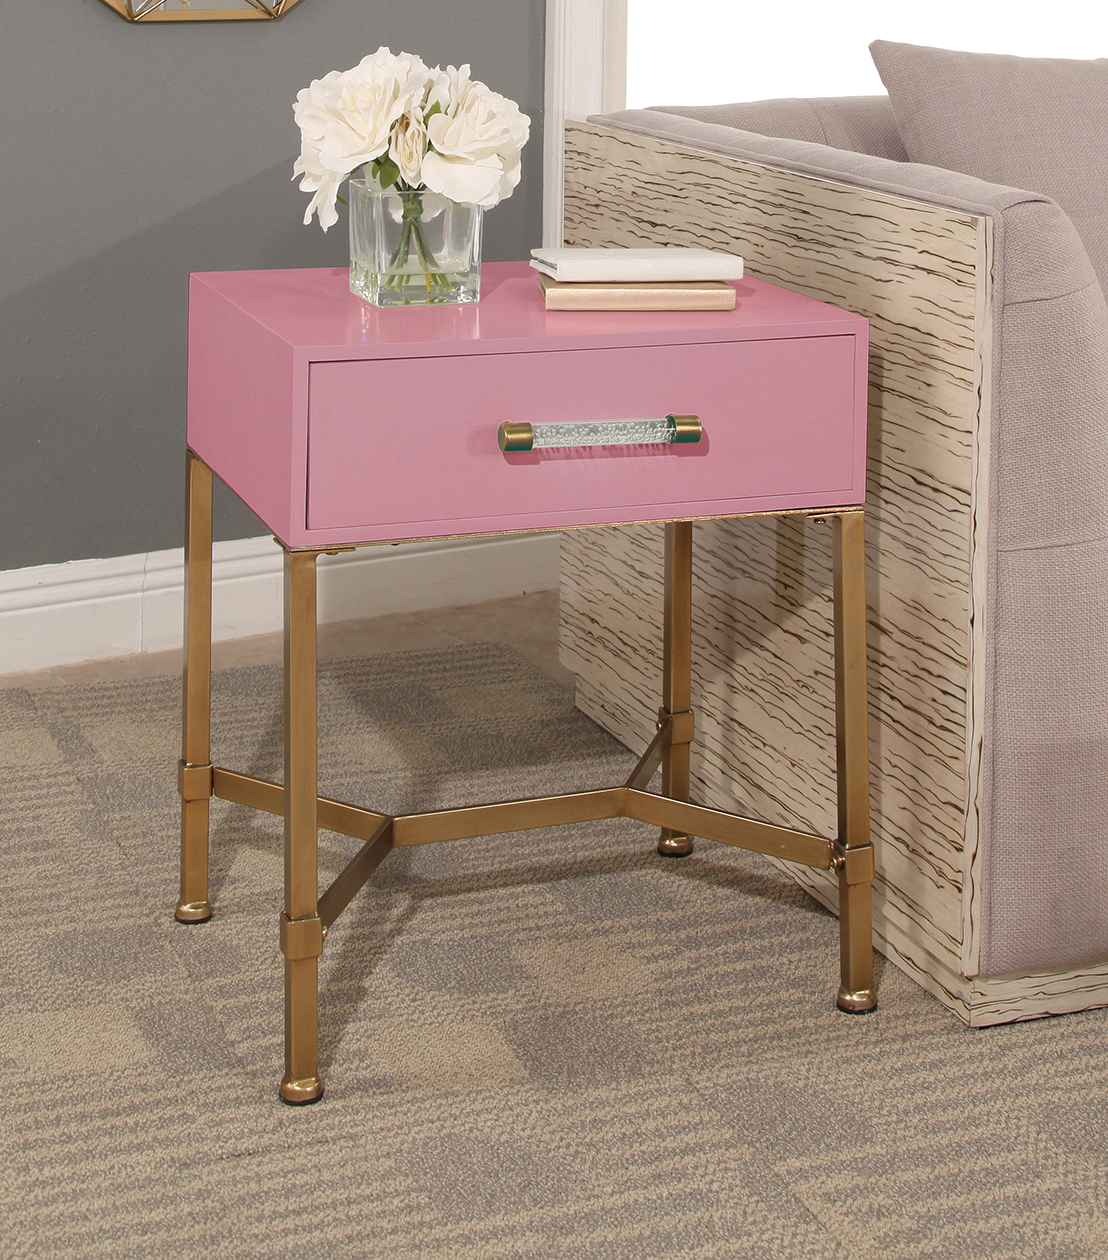 accent tables pnk pink metal table sophie gold iron end white wicker pier one nesting floating teal coffee crystal lamp wood and glass designs bedroom furniture manufacturers dale